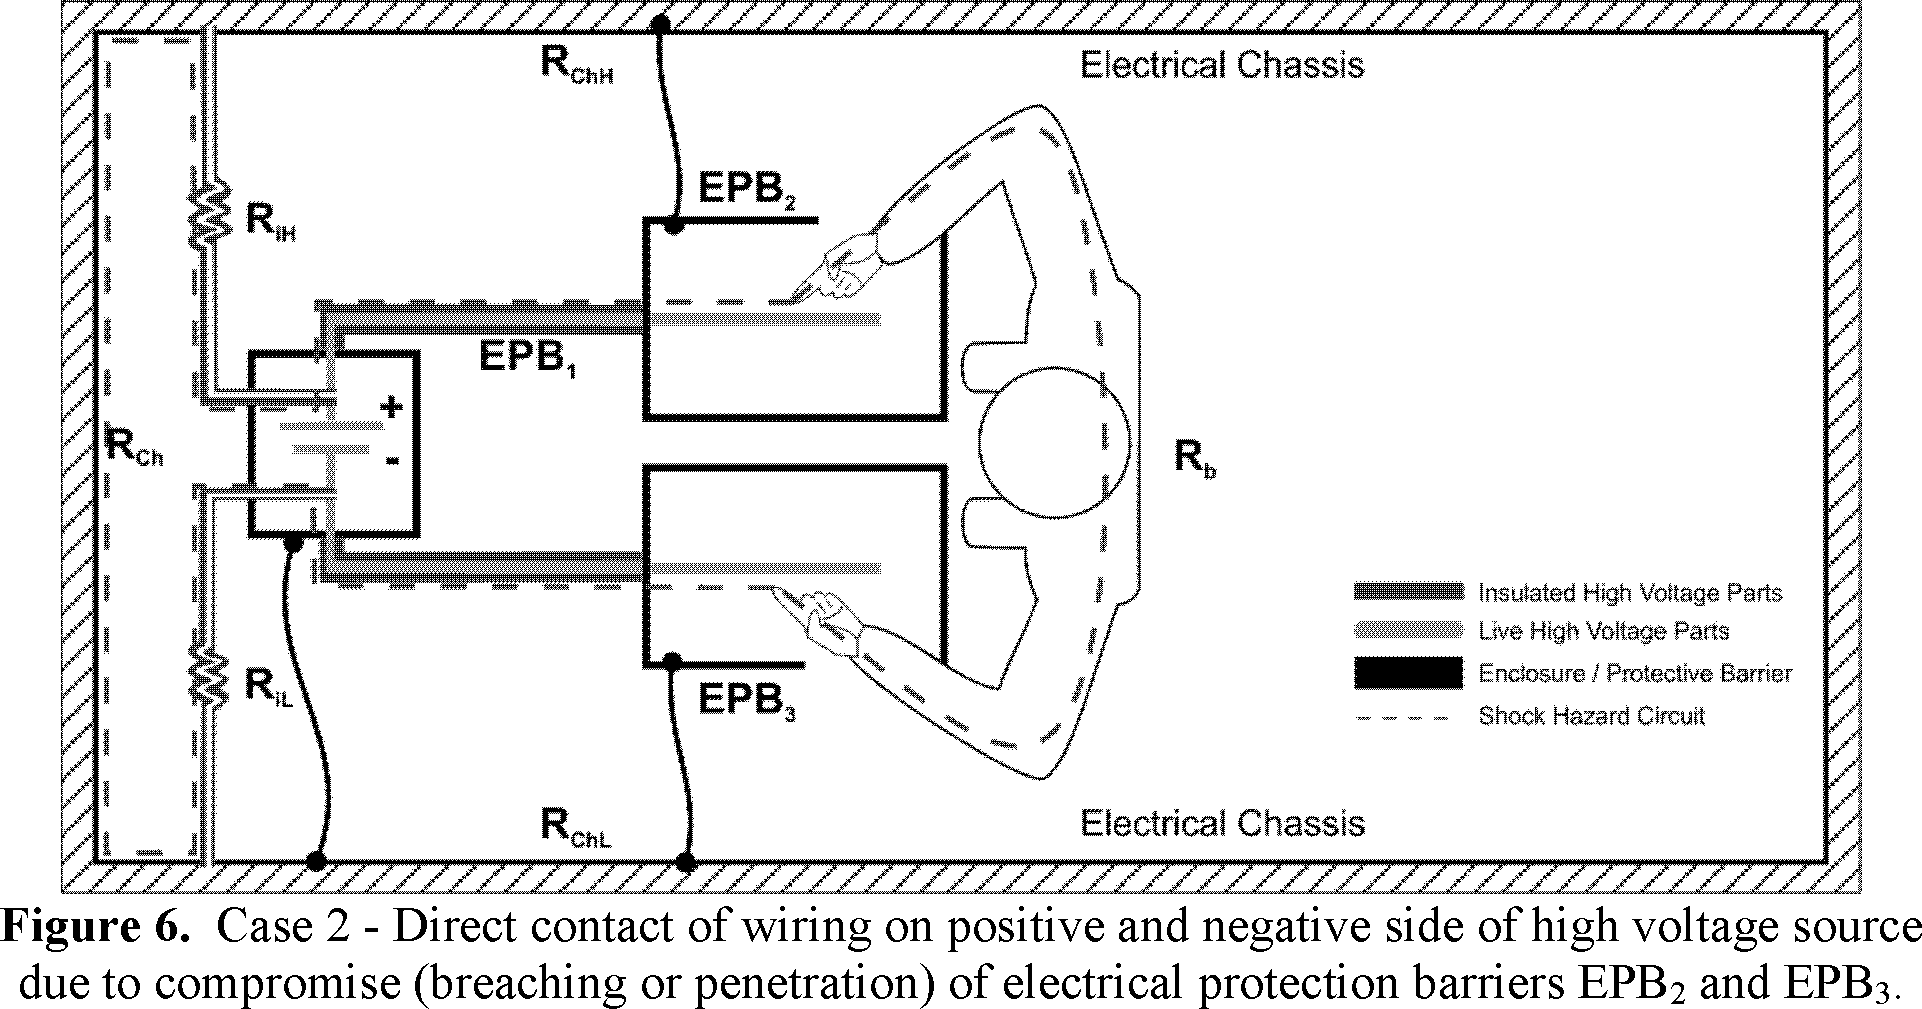 Protective Wiring Diagram Library Circuit As Well High Voltage Switchgear On Federal Register Motor Vehicle Safety Standards Electric Powered Vehicles Electrolyte